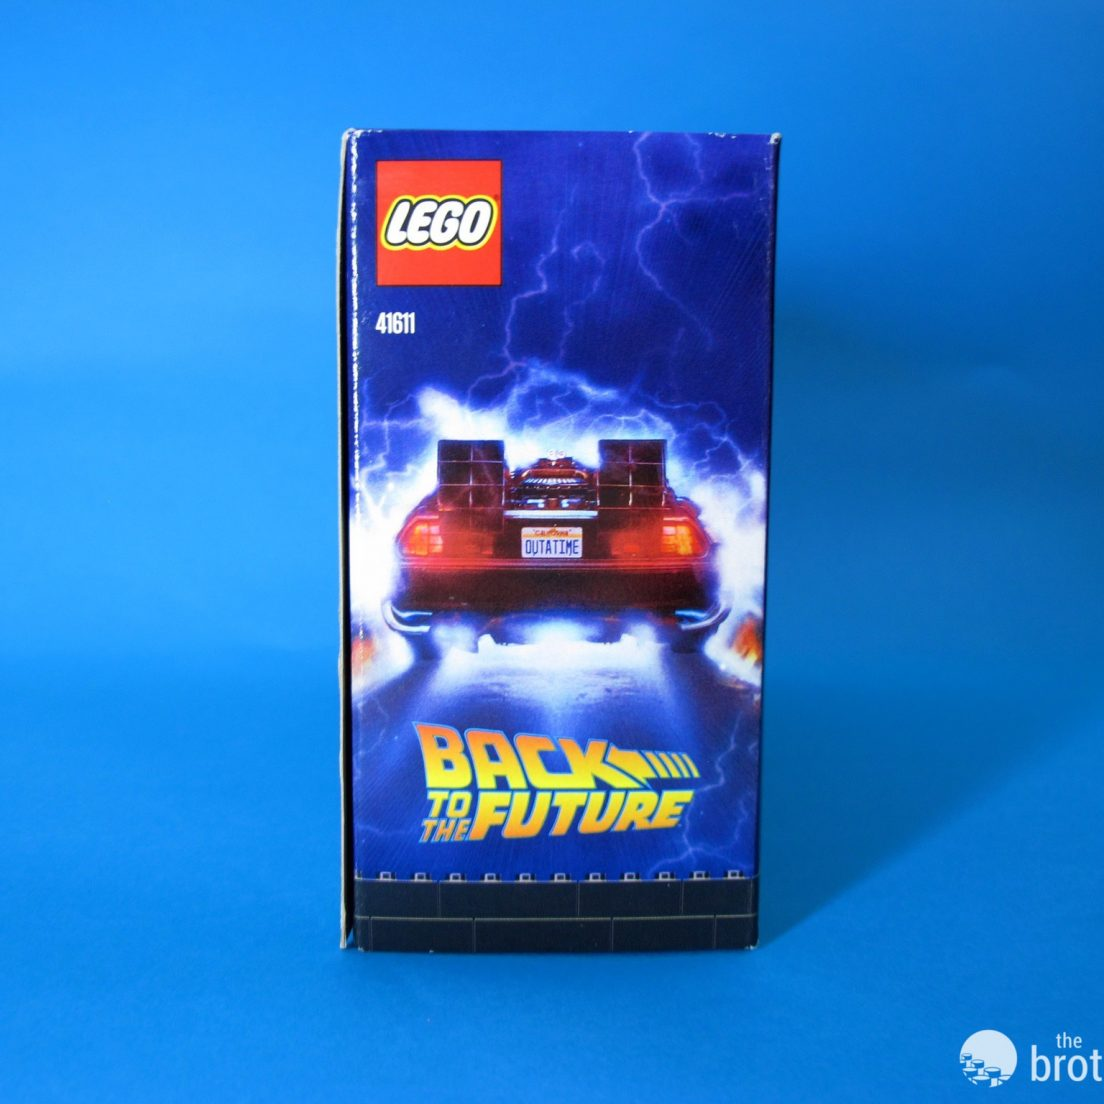 41611 Back To the Future BrickHeadz Box Side